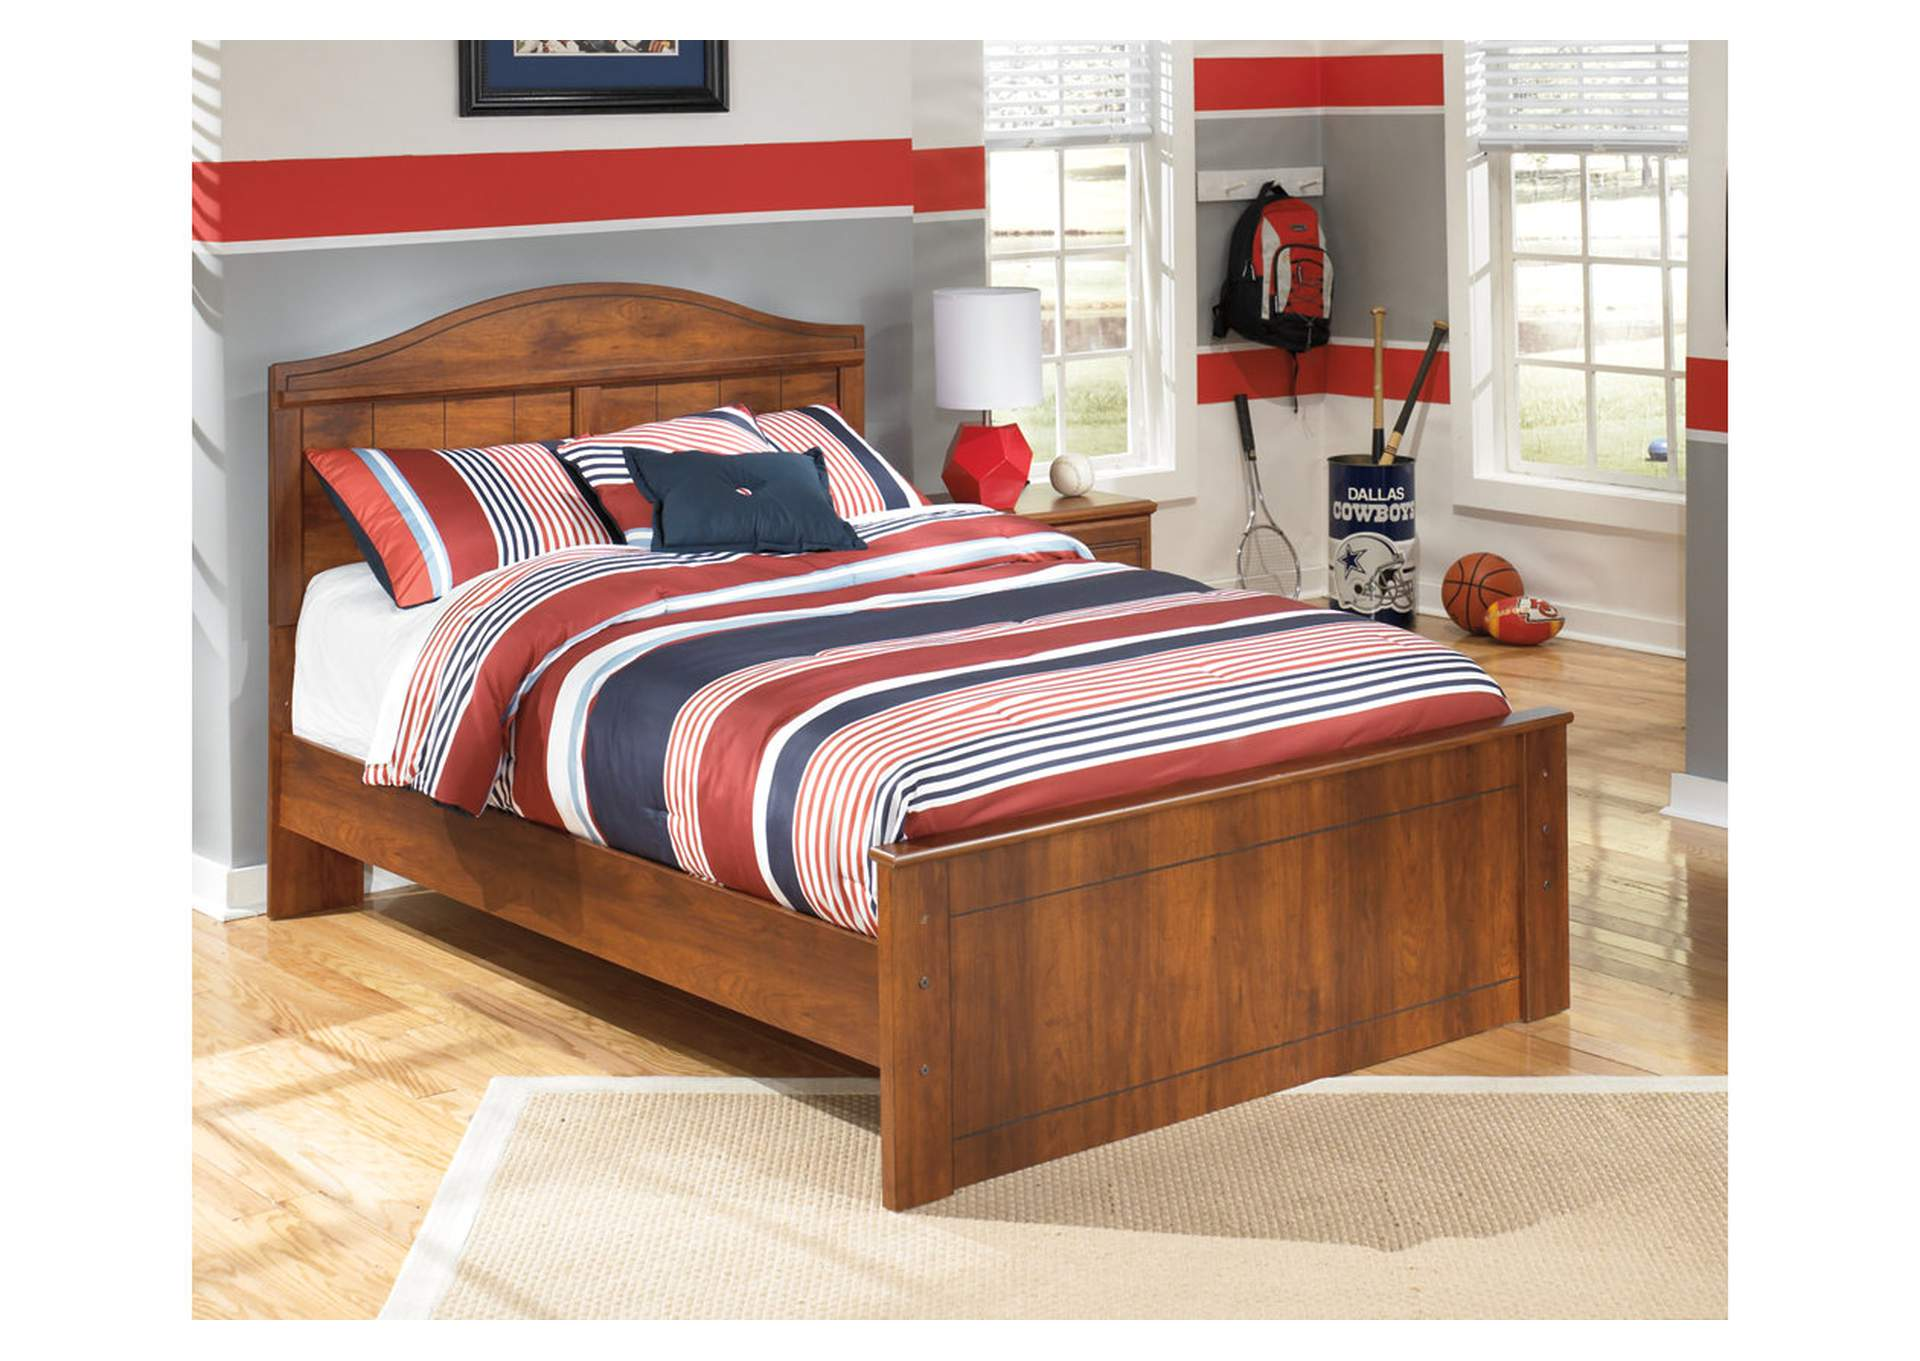 Barchan Full Panel Bed,ABF Signature Design by Ashley